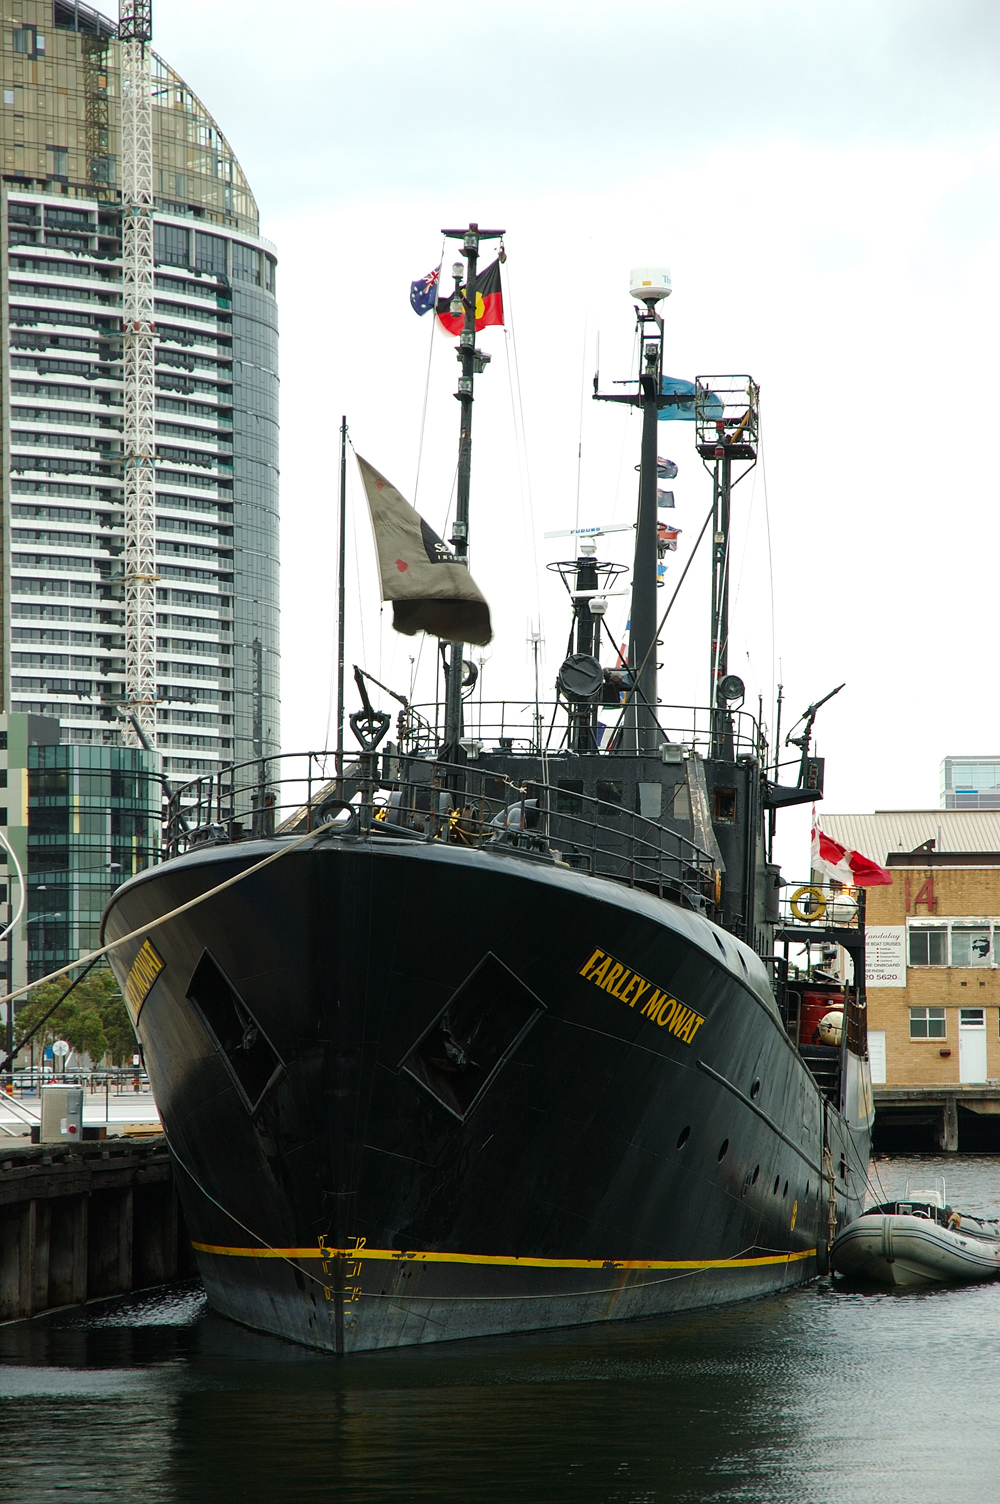 a comparative essay on never cry wolf by farley mowat writework english farley mowat i took this at docklands melbourne in 2005